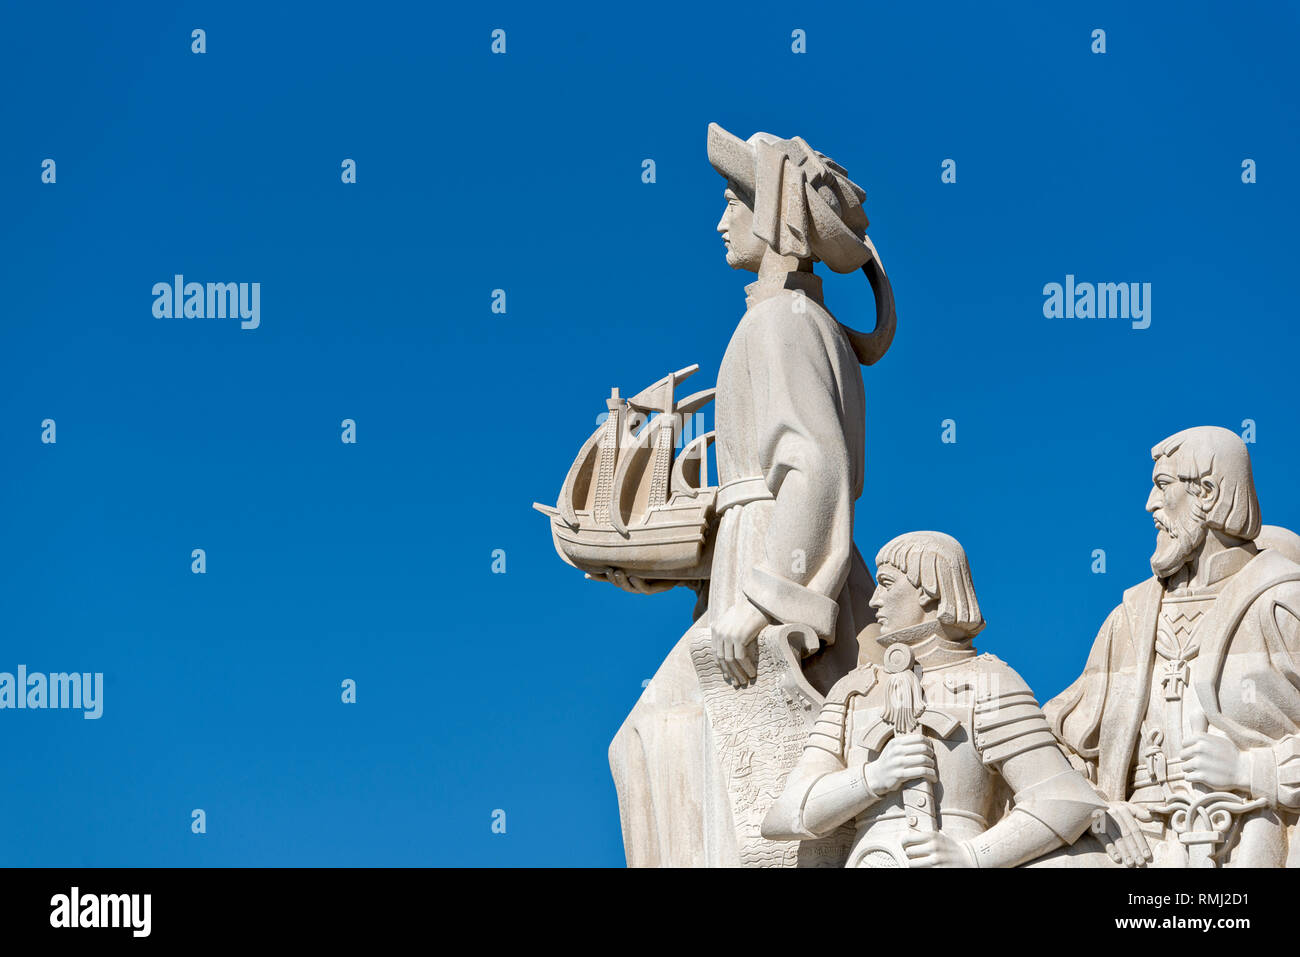 Henry the navigator, King Alfonso V and Vasco da Gama on the  Padrao dos Descobrimentos, Monument to the Discoveries in Belem, Lisbon, Portugal - Stock Image